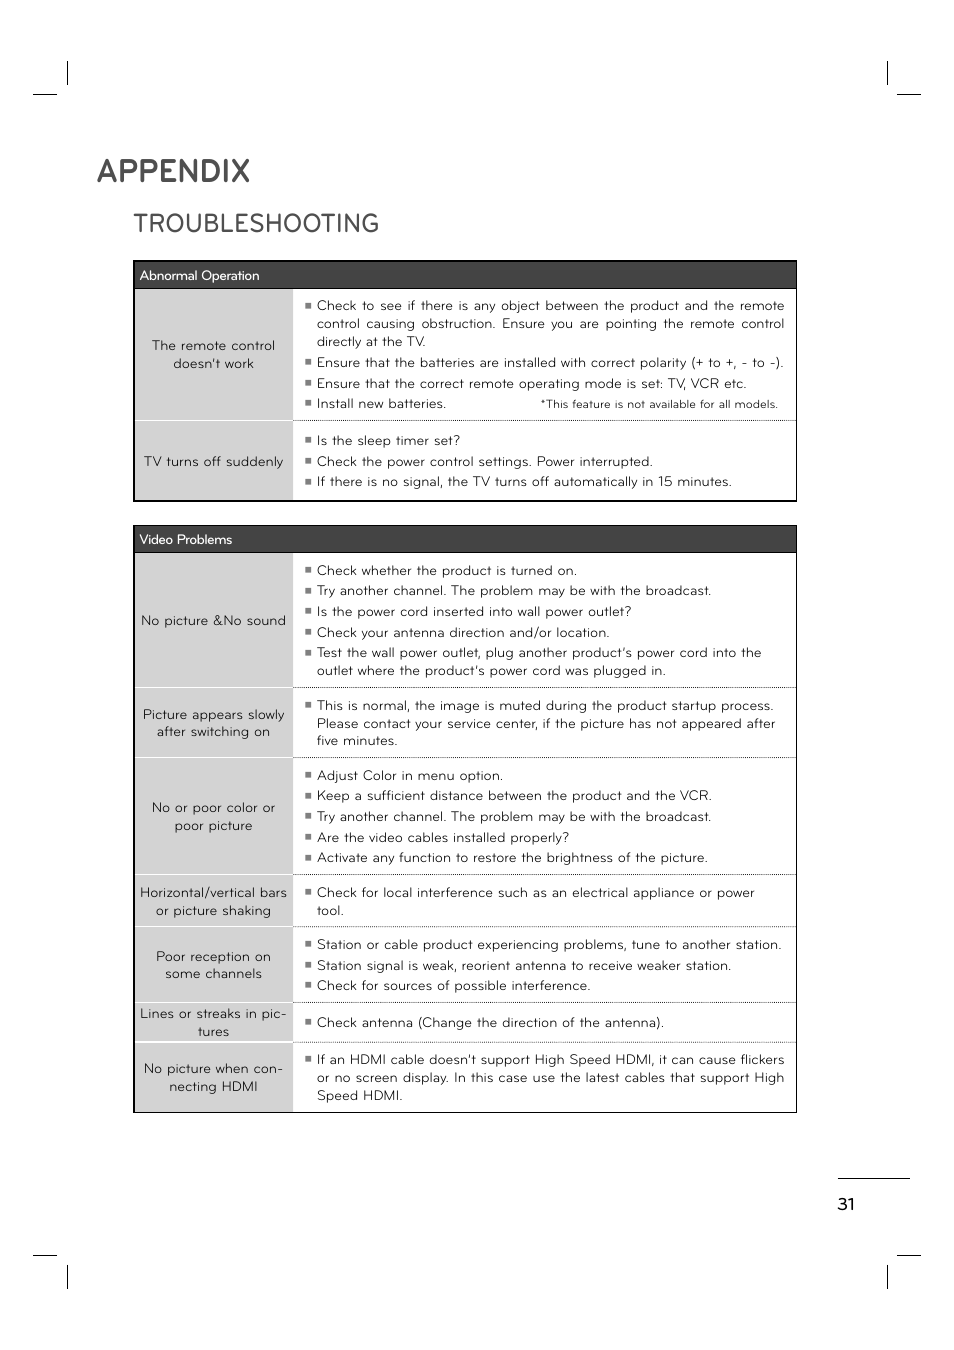 Appendix, Troubleshooting | LG 55LE5400 User Manual | Page 31 / 39